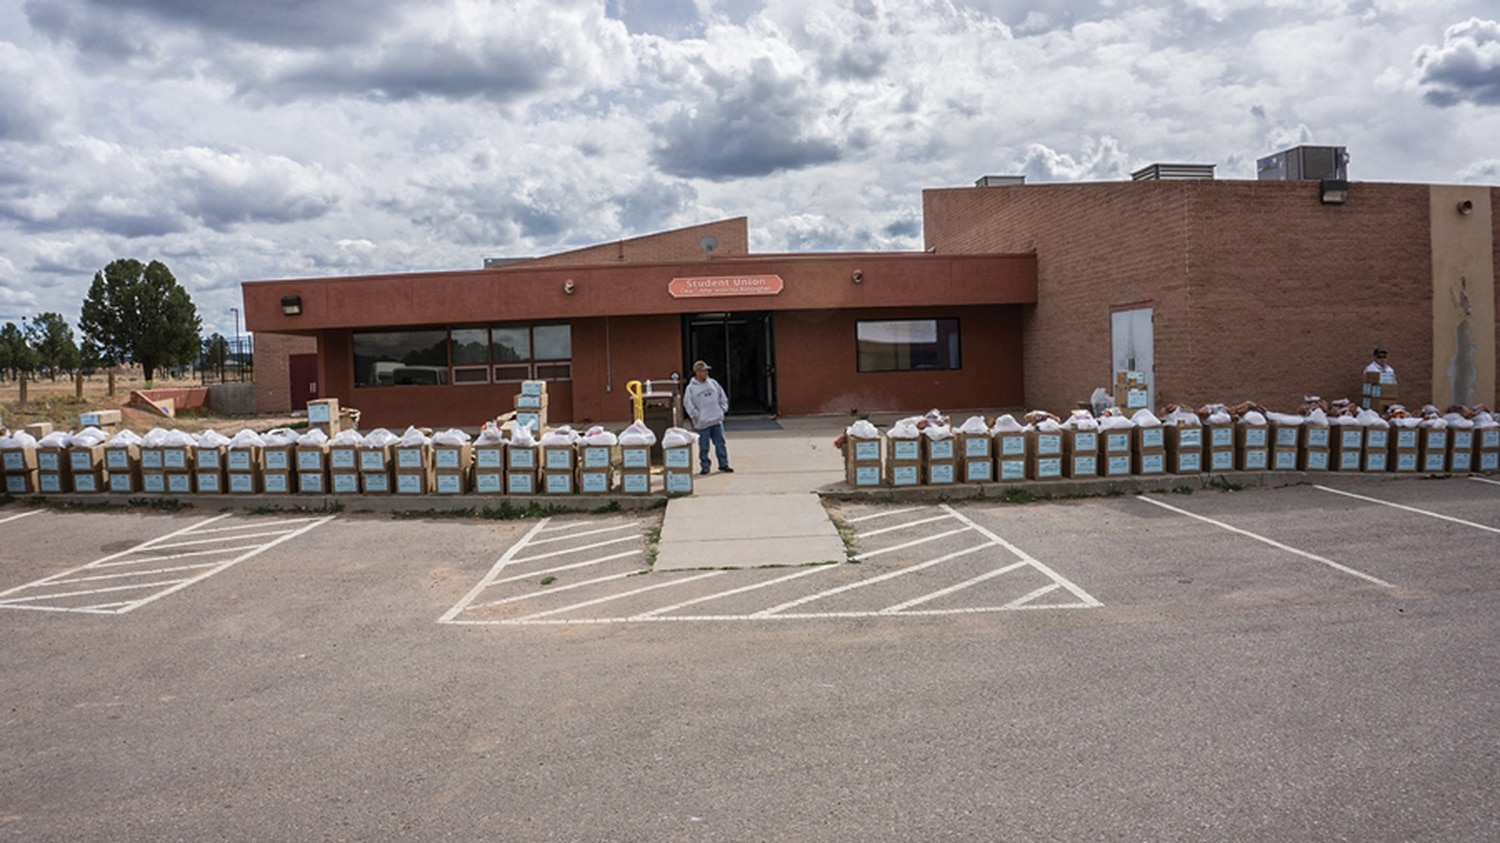 Supply boxes ready for pick-up at Diné College in Tsaile, Arizona.